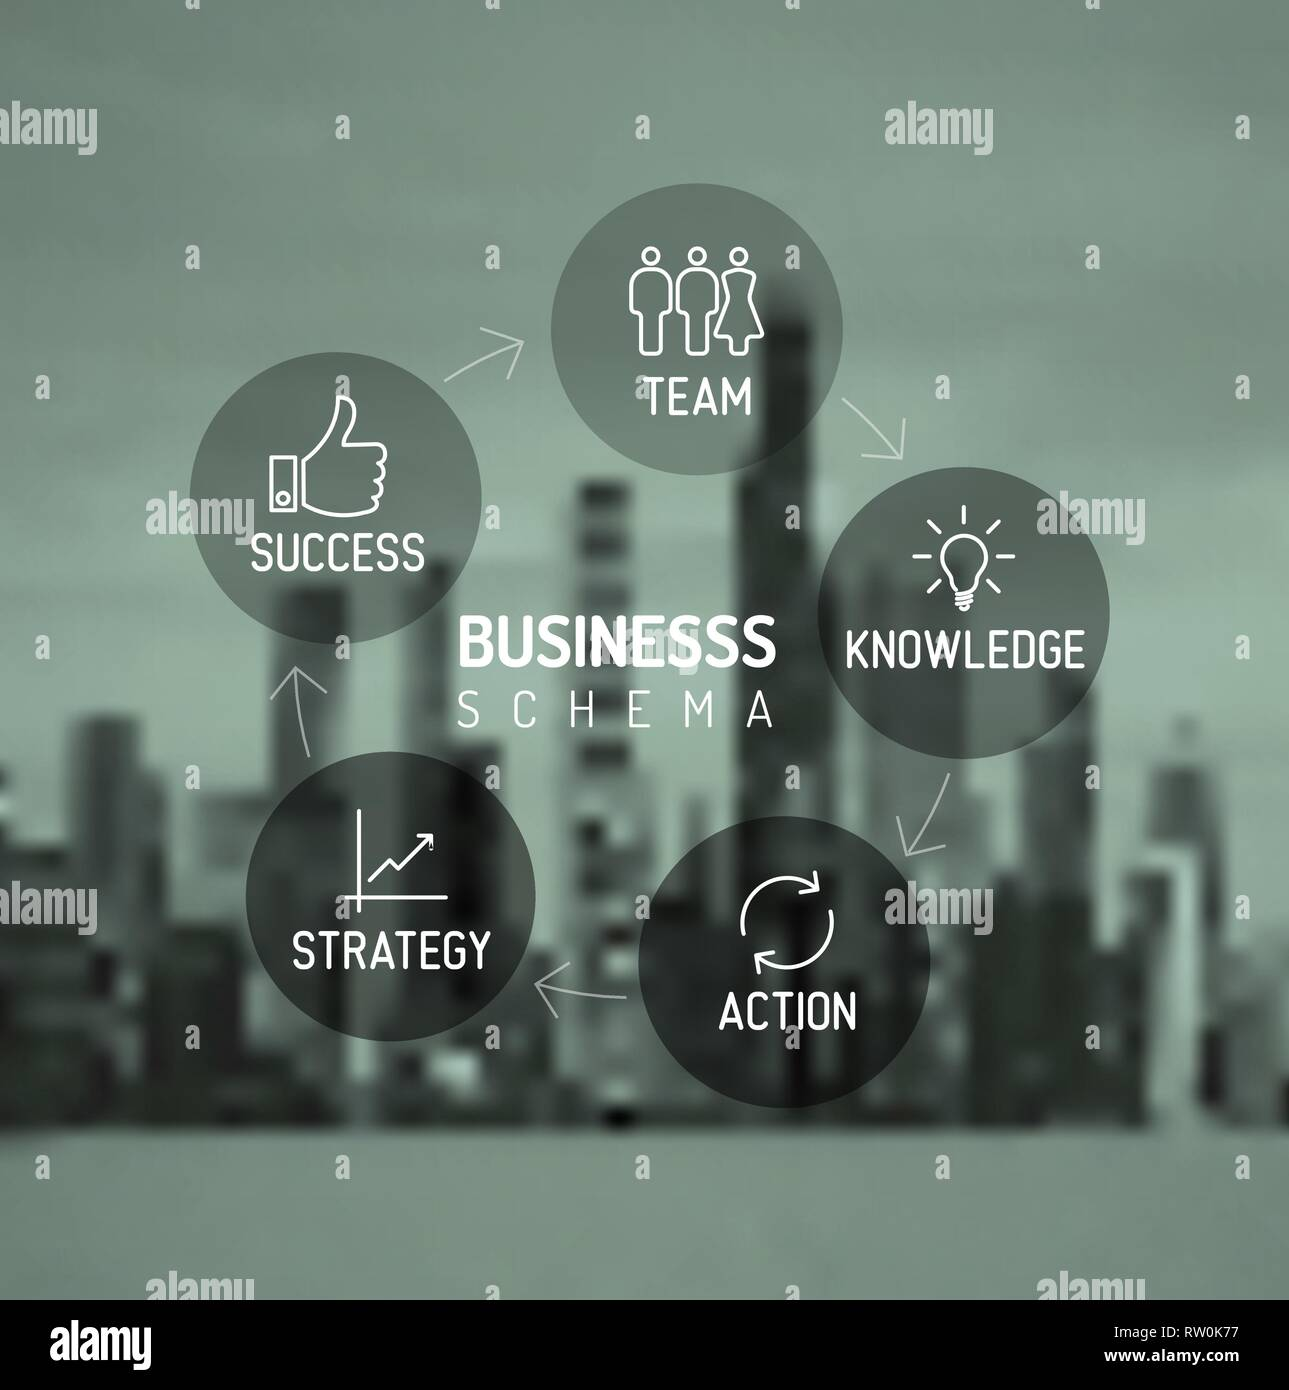 hight resolution of vector minimalistic business schema diagram team knowledge action strategy success with city skyline in the background